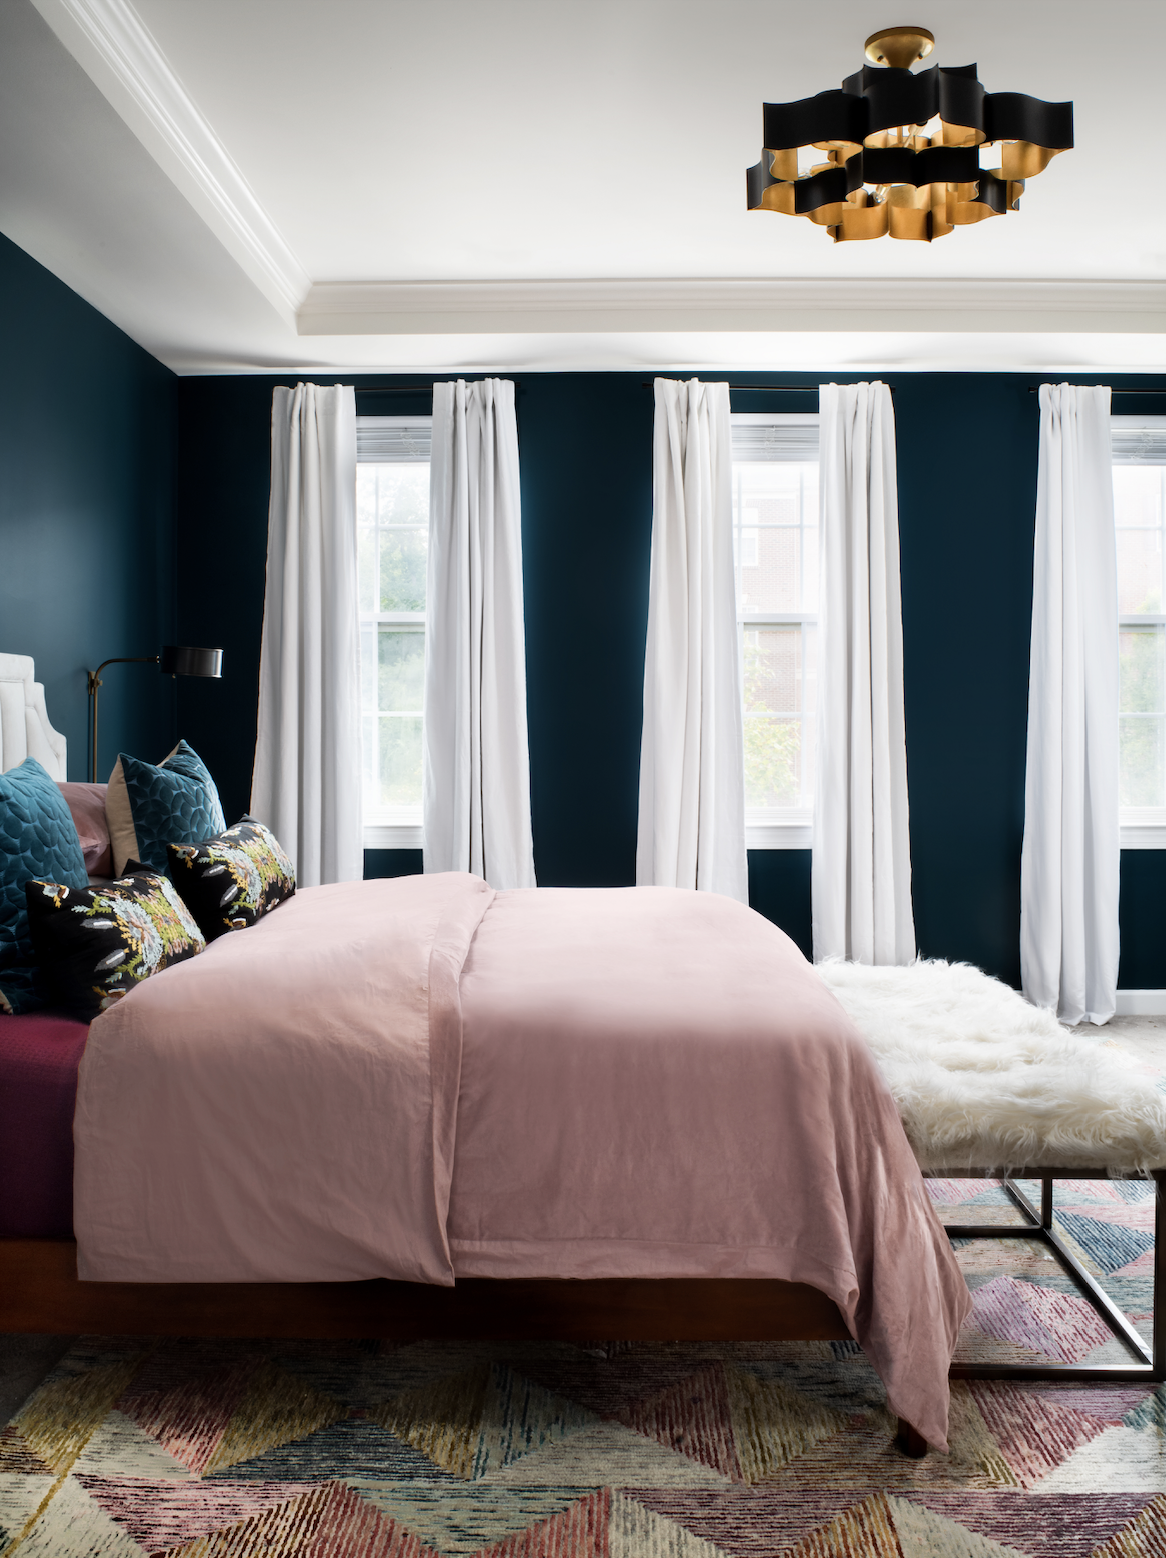 currey and co lighting black gold fixture white curtains blue walls white ceiling moody soothing bedroom loloi rug